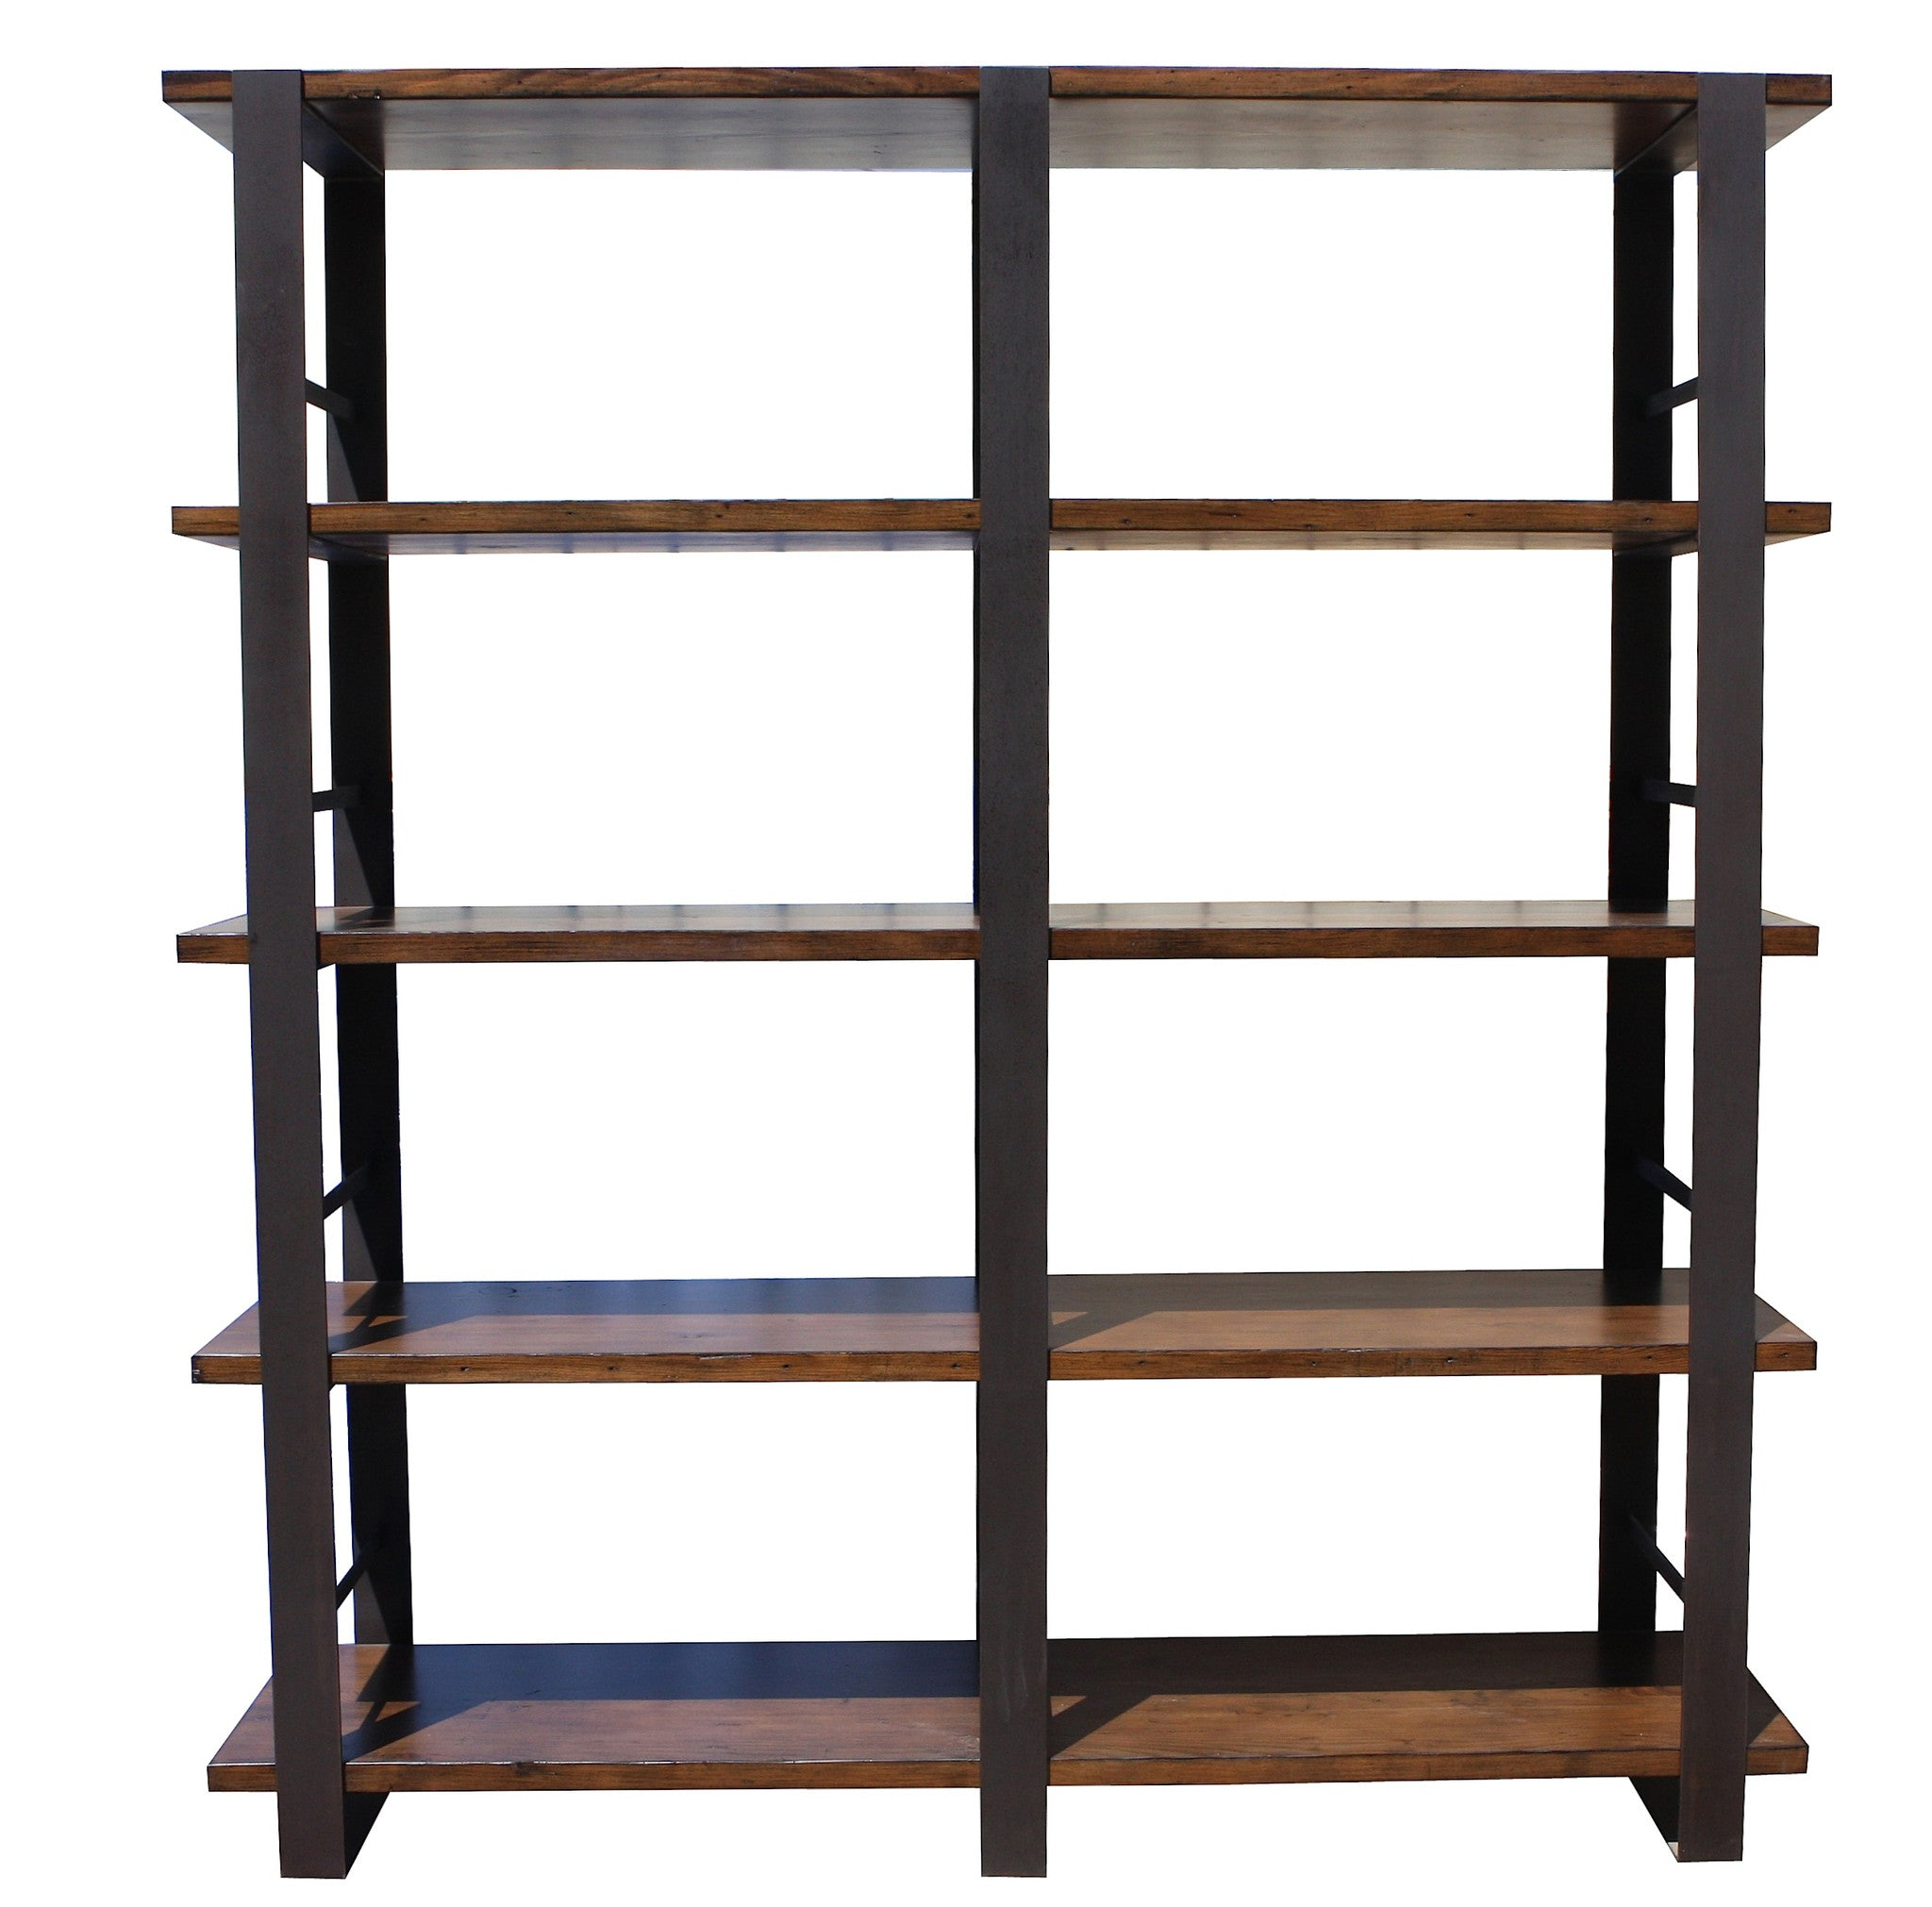 shelves size frame bookcase and inspirations compact wood stupendous metal organizations bookcases design full rustic storage furniture